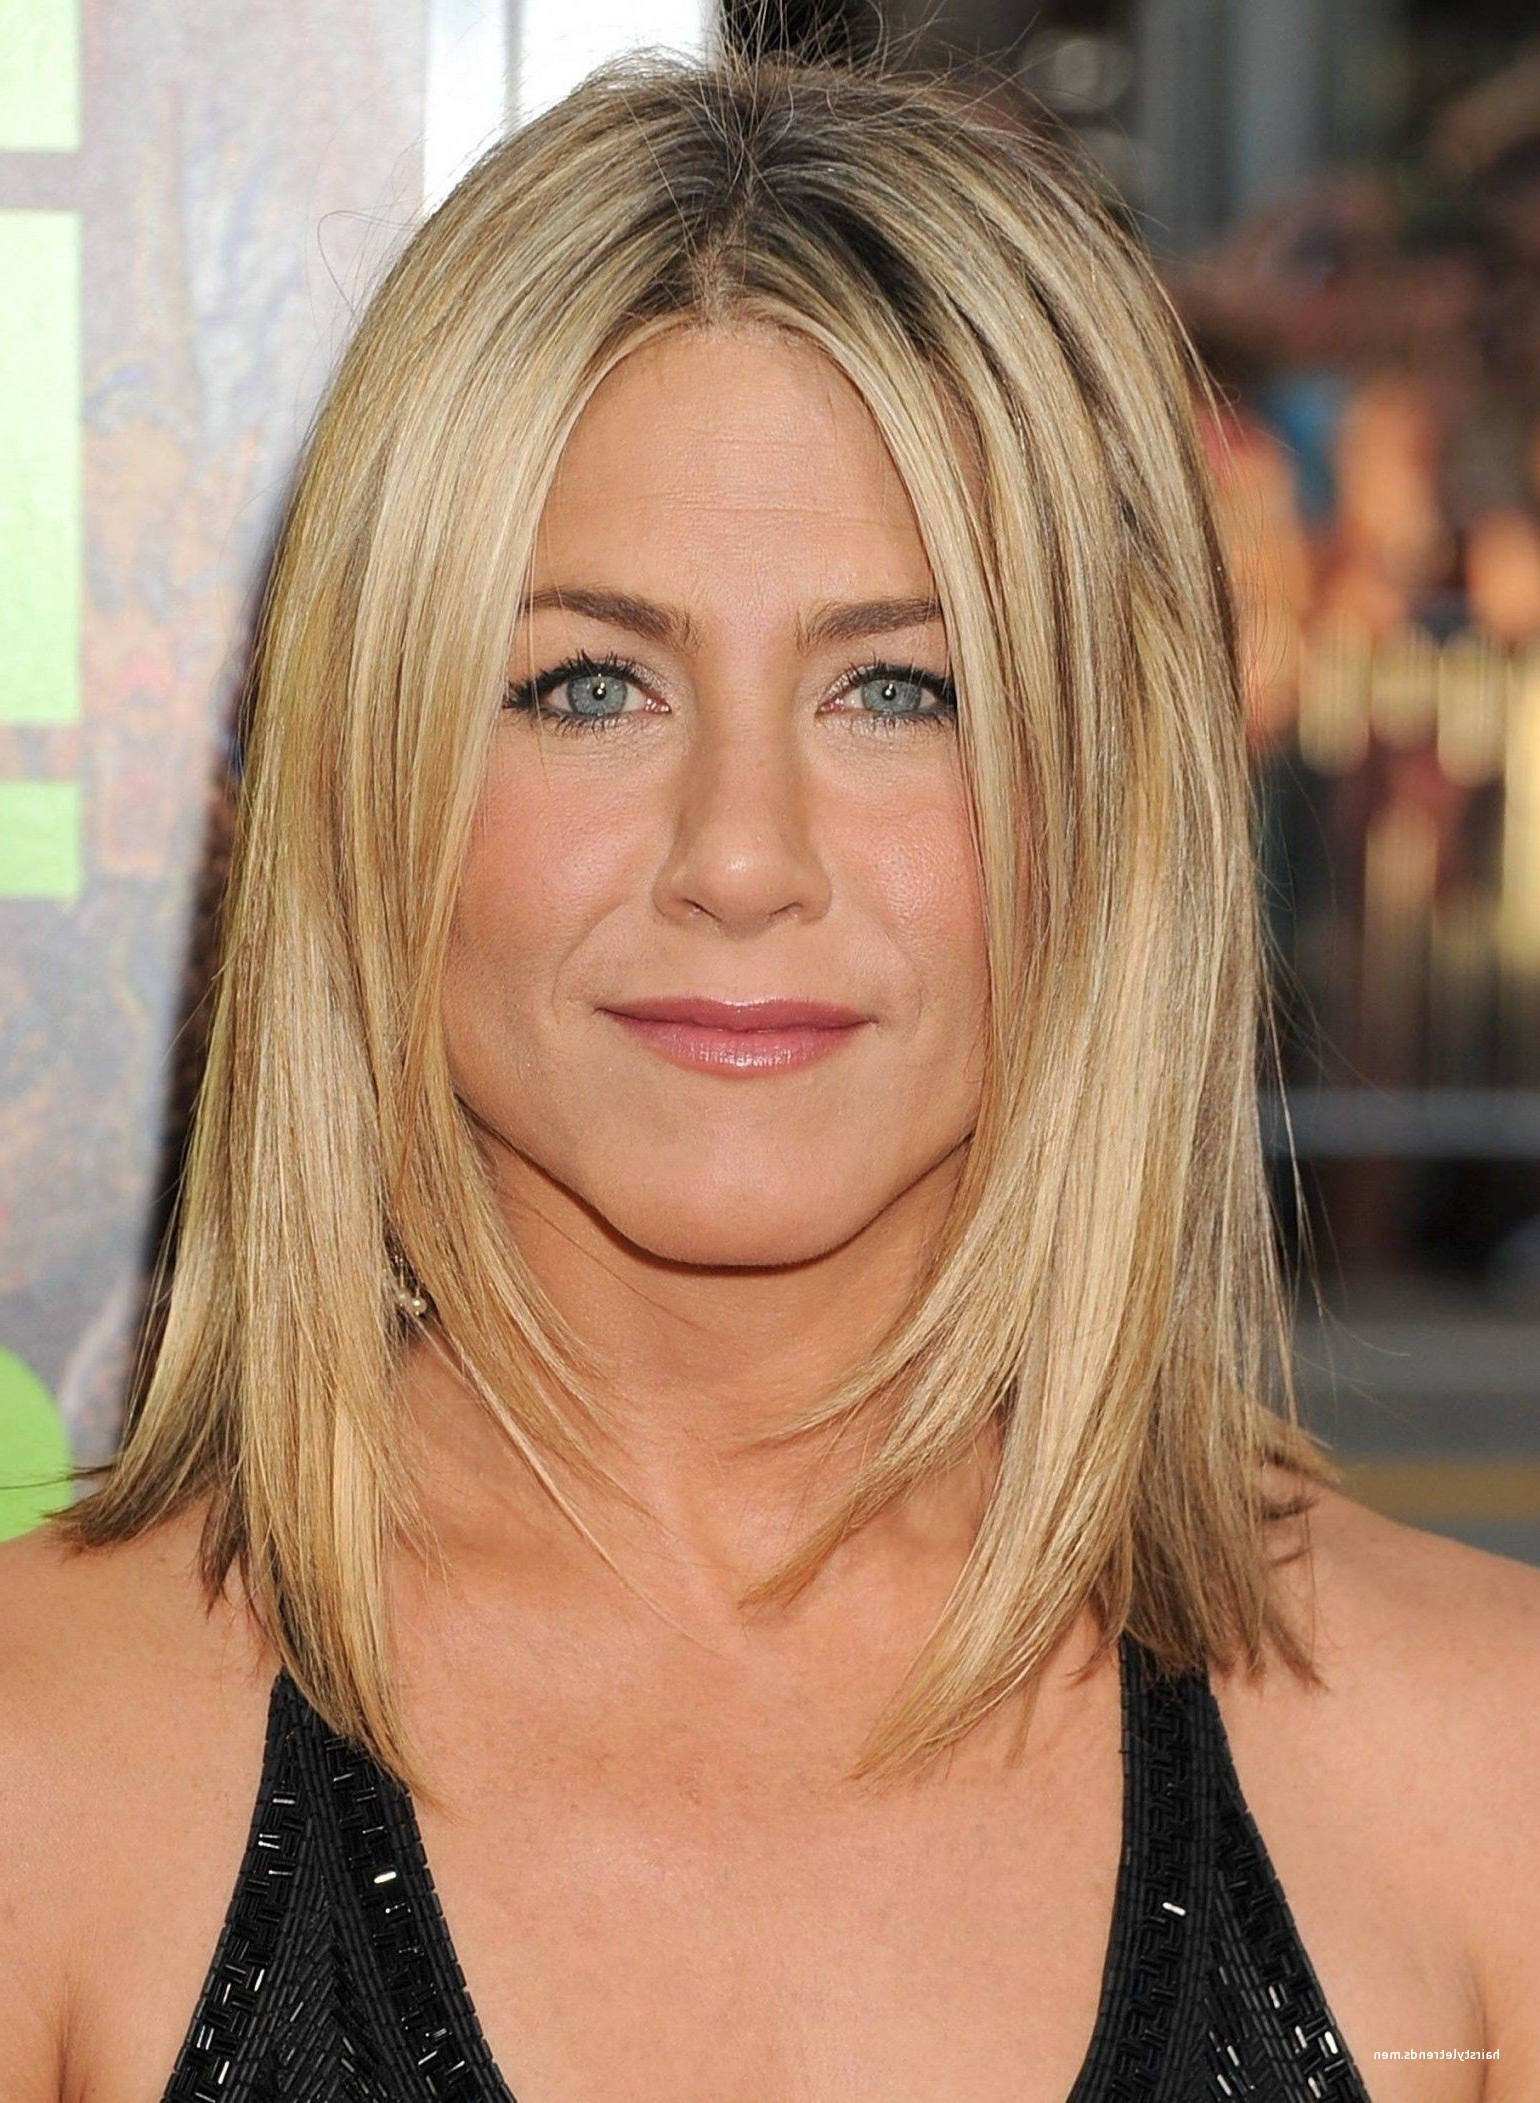 Best Of Hairstyles For Women Over 50 With Fine Hair • Hairstyletrends Within Short Layered Hairstyles For Fine Hair Over  (View 24 of 25)